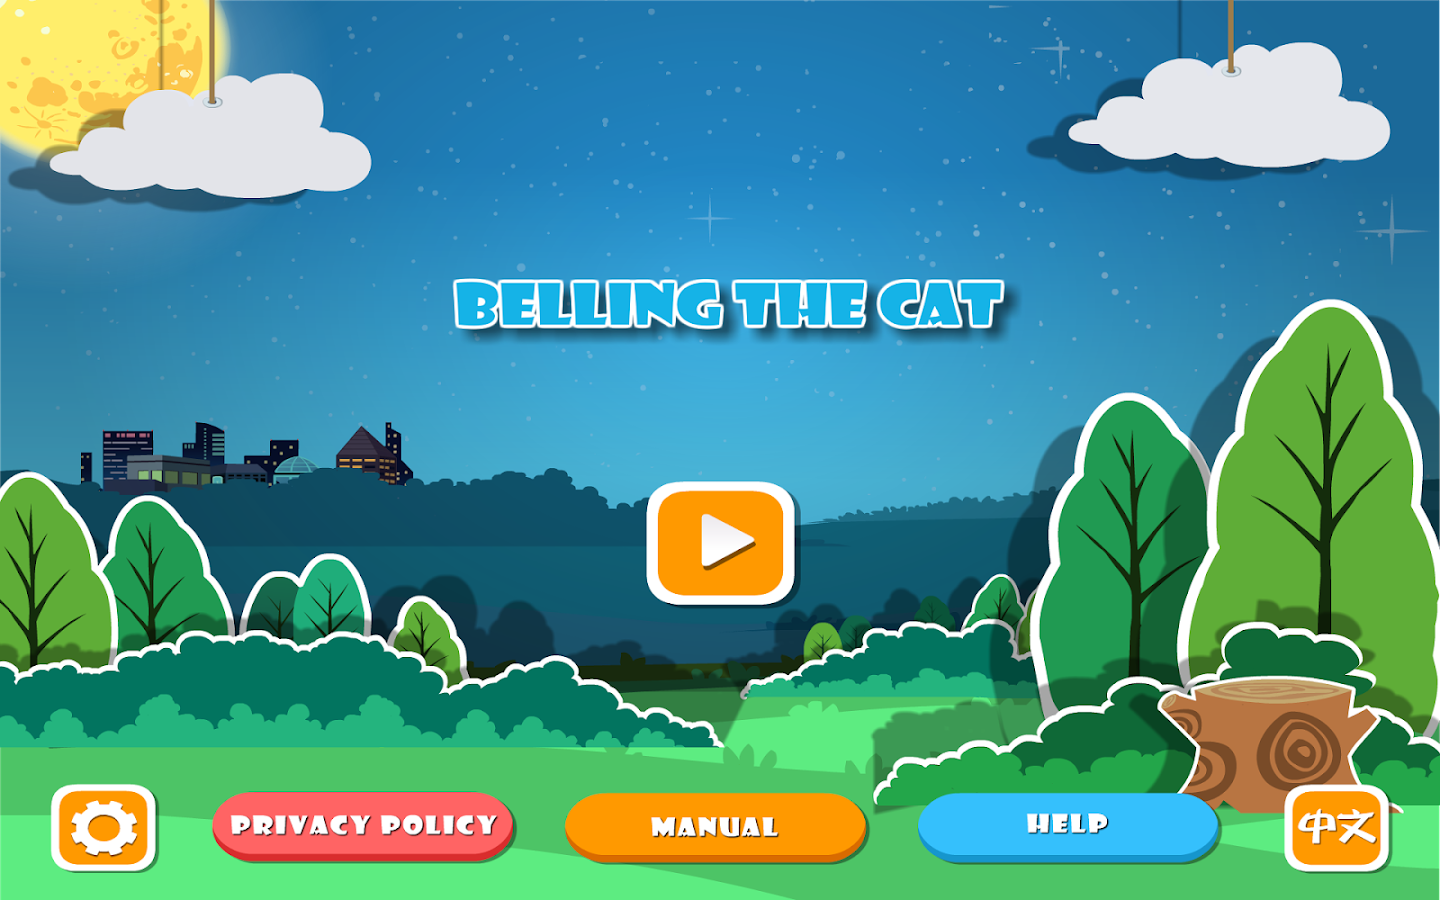 Belling the cat android apps on google play